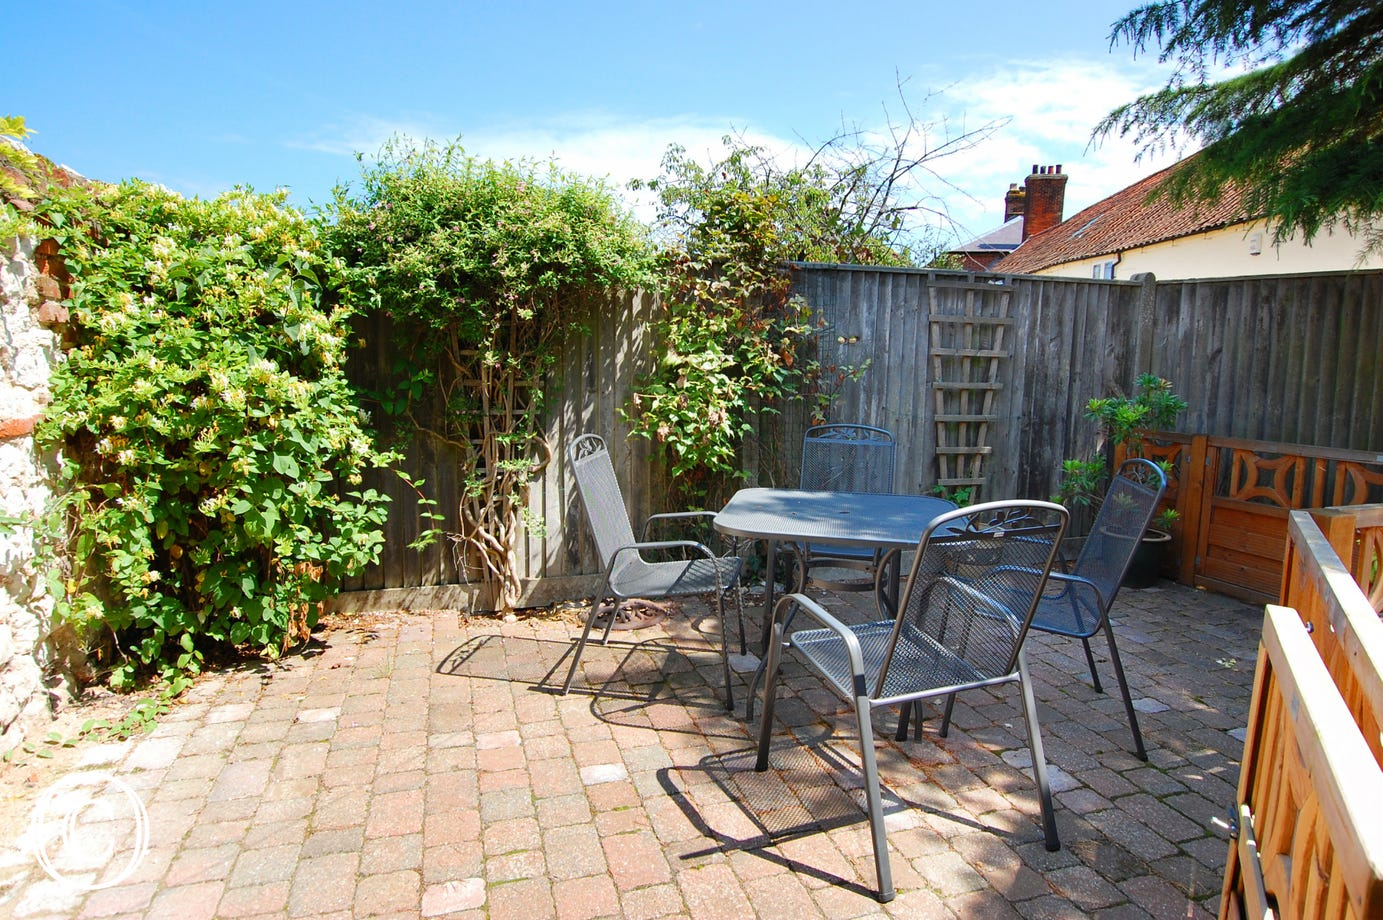 Enclosed private patio area with garden furniture, ideal for al fresco dining